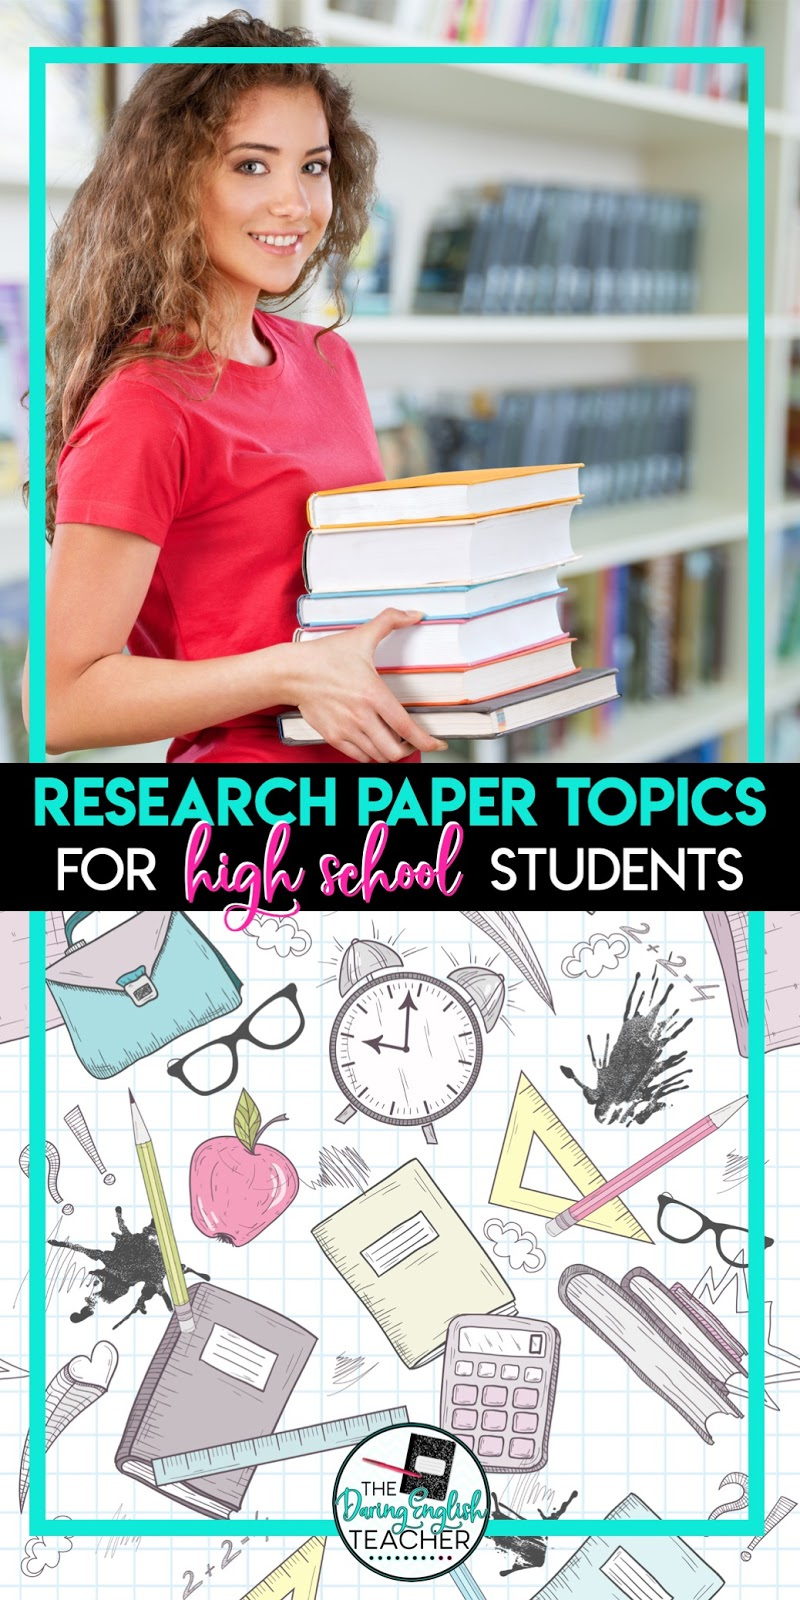 Research Paper Topics For High School Students  The  First Day In College Essay Compare And Contrast Essay Topics For High School Research Paper Topics For High School Students  The  Short Essay also What Is Business Ethics Essay